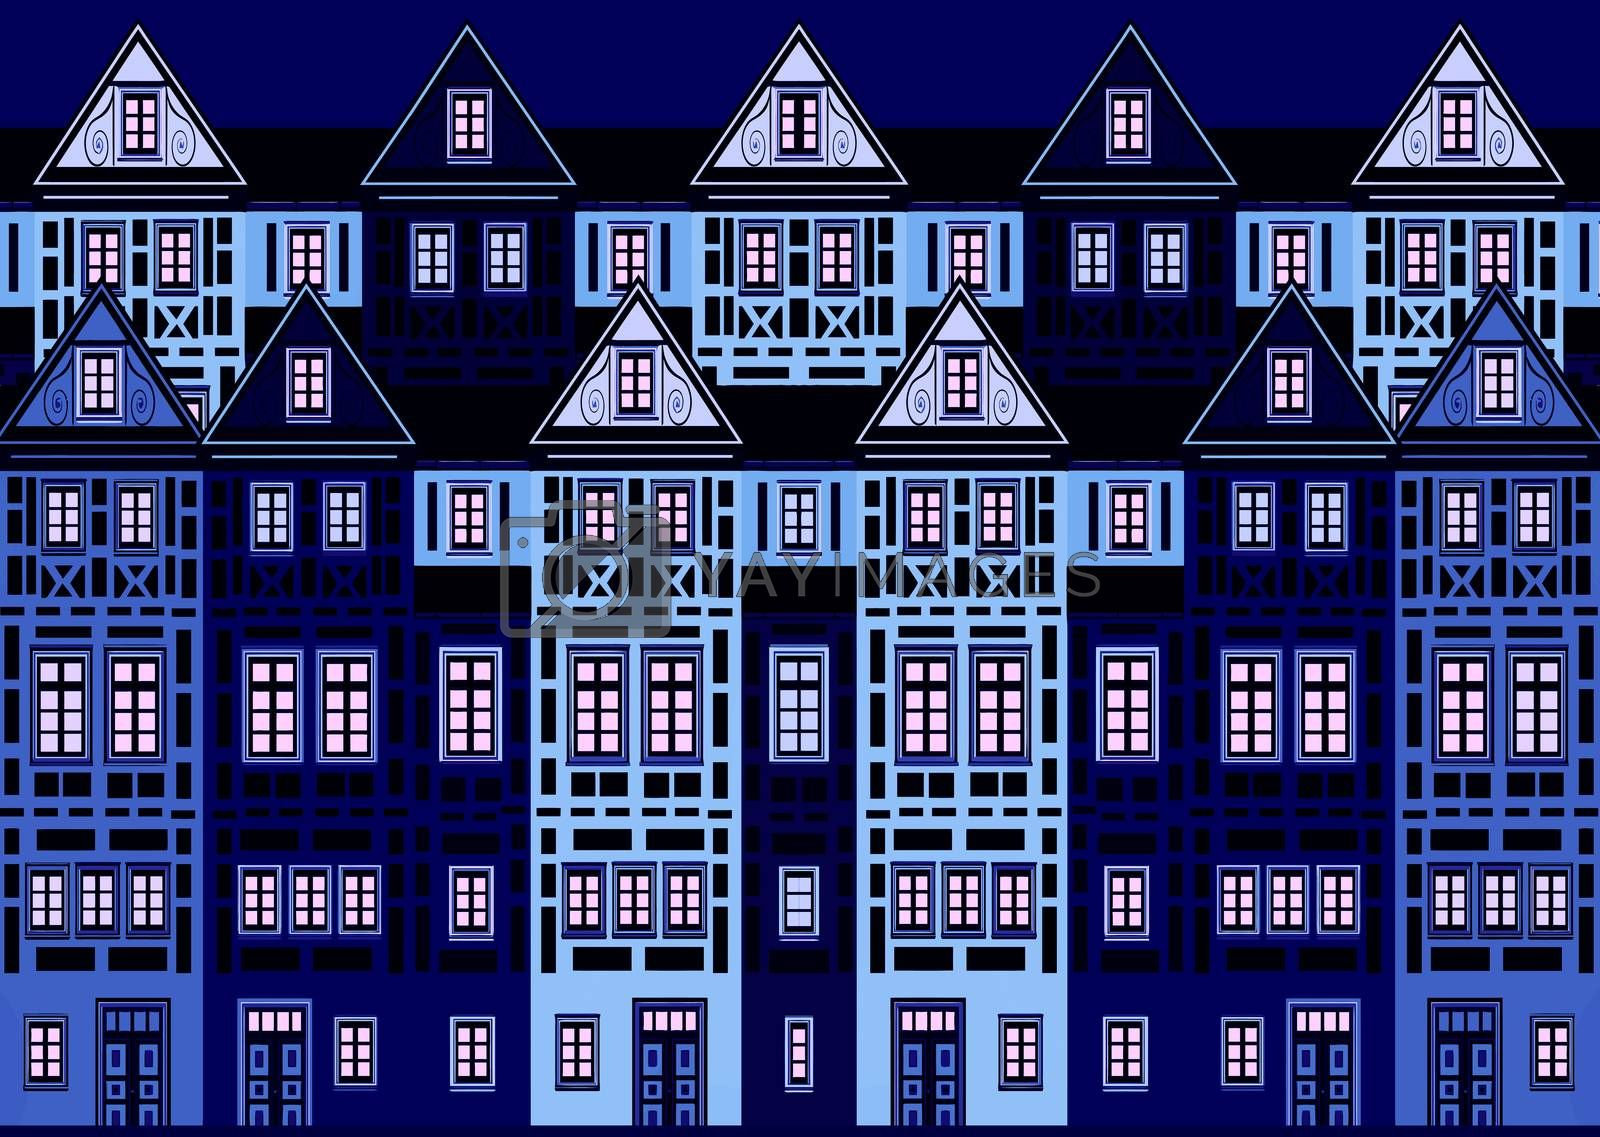 Row of historic Art Nouveau Buildings, horizontally seamless tileable